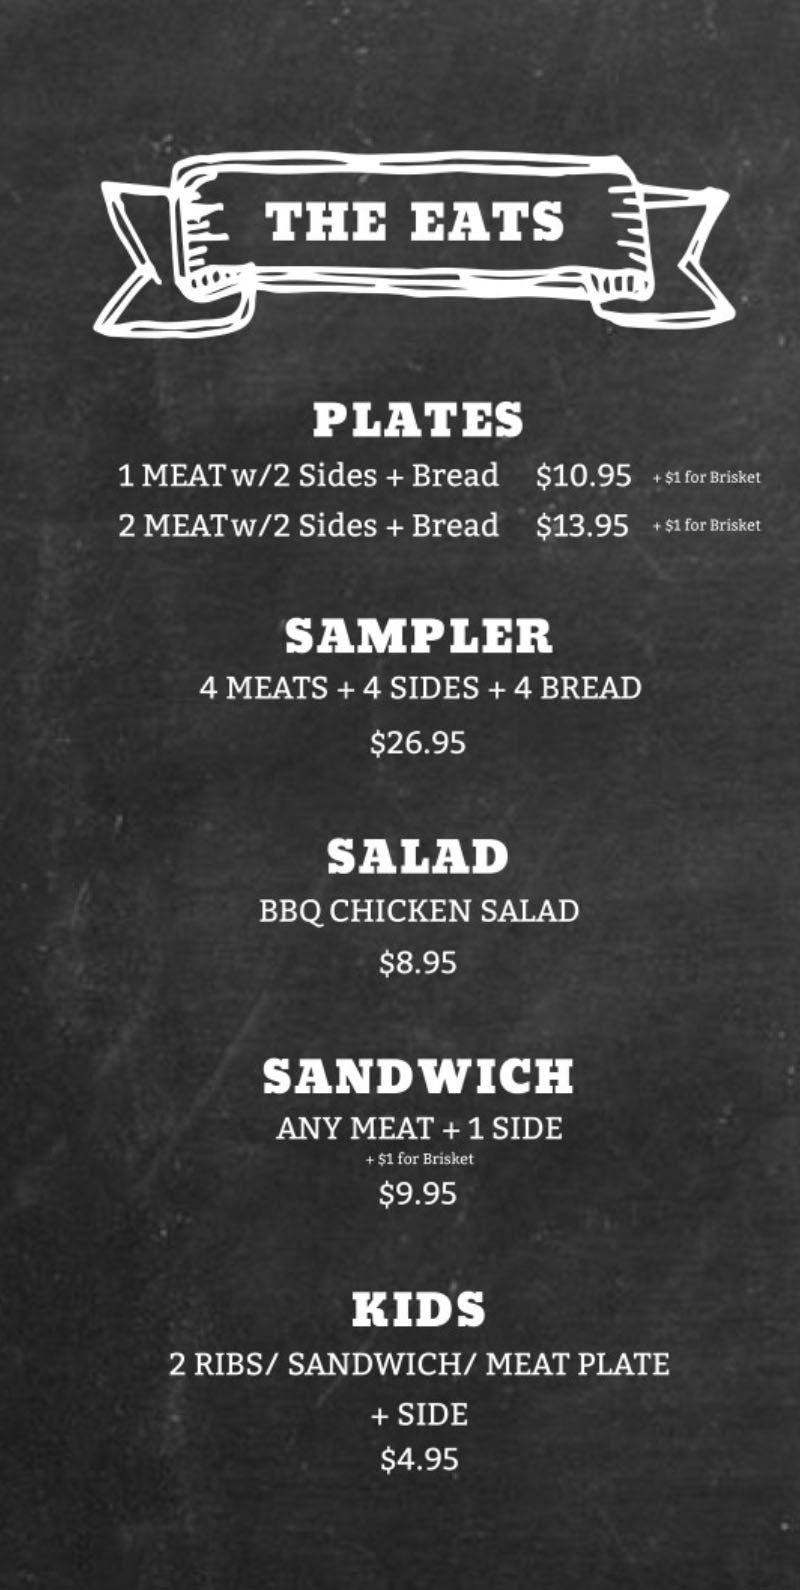 Five Star BBQ Company menu - plates, sampler, salad, sandwich